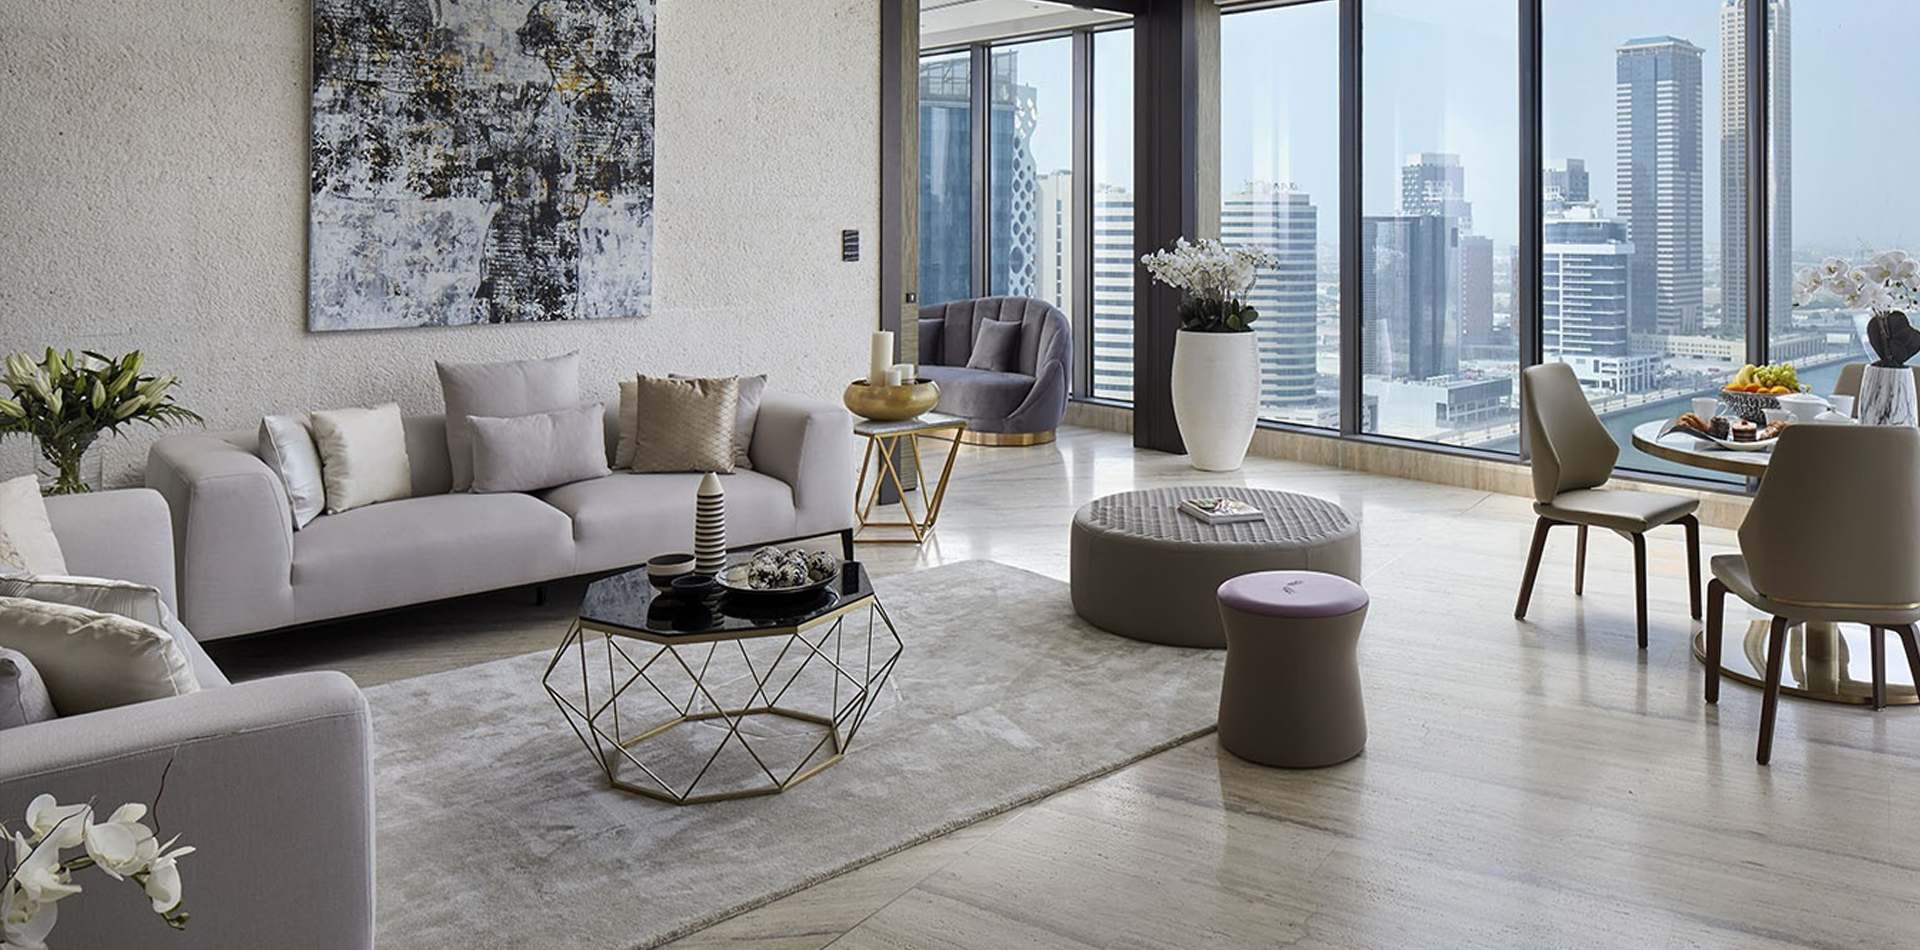 interiors to excite and inspire